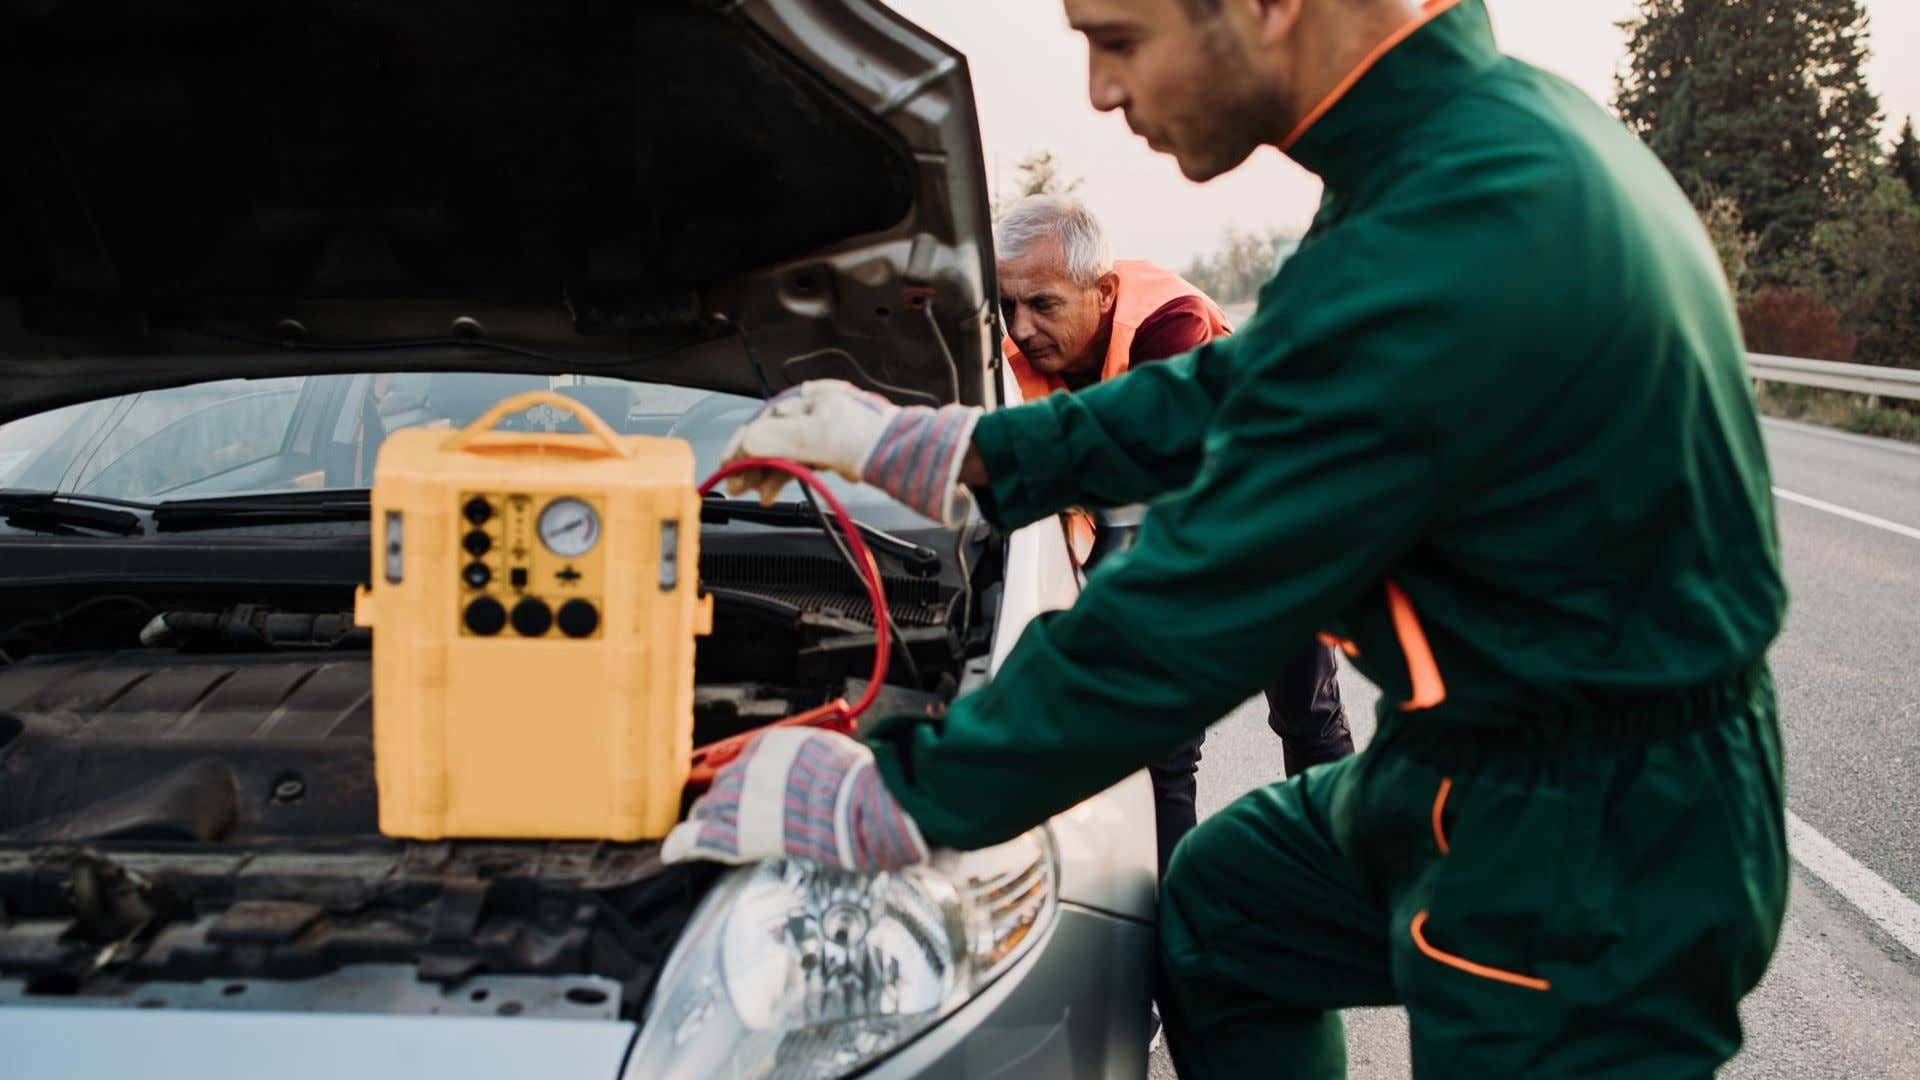 How To Start A Car With A Dead Battery Without Another Car